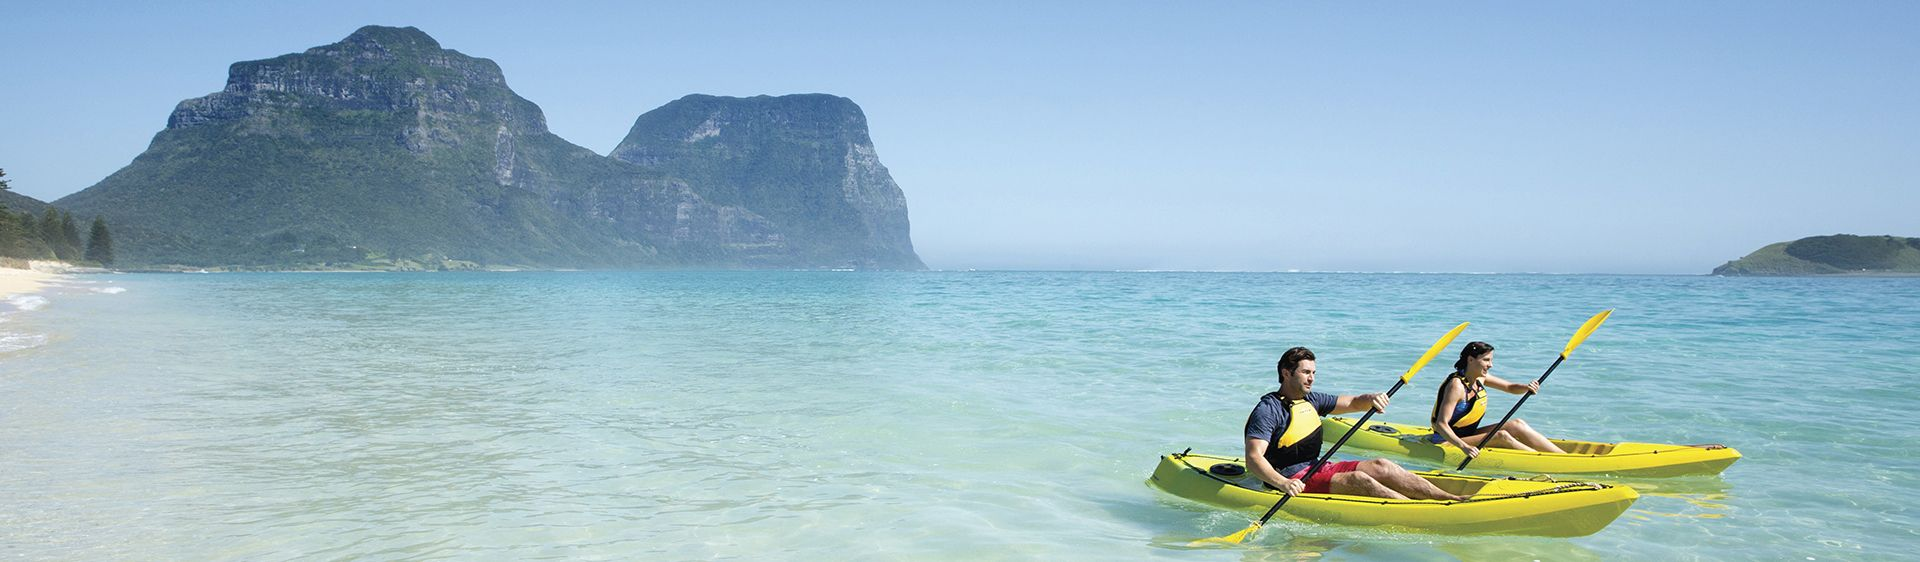 Couple enjoying a scenic kayak by Lagoon Beach on Lord Howe Island with Mount Gower as the backdrop